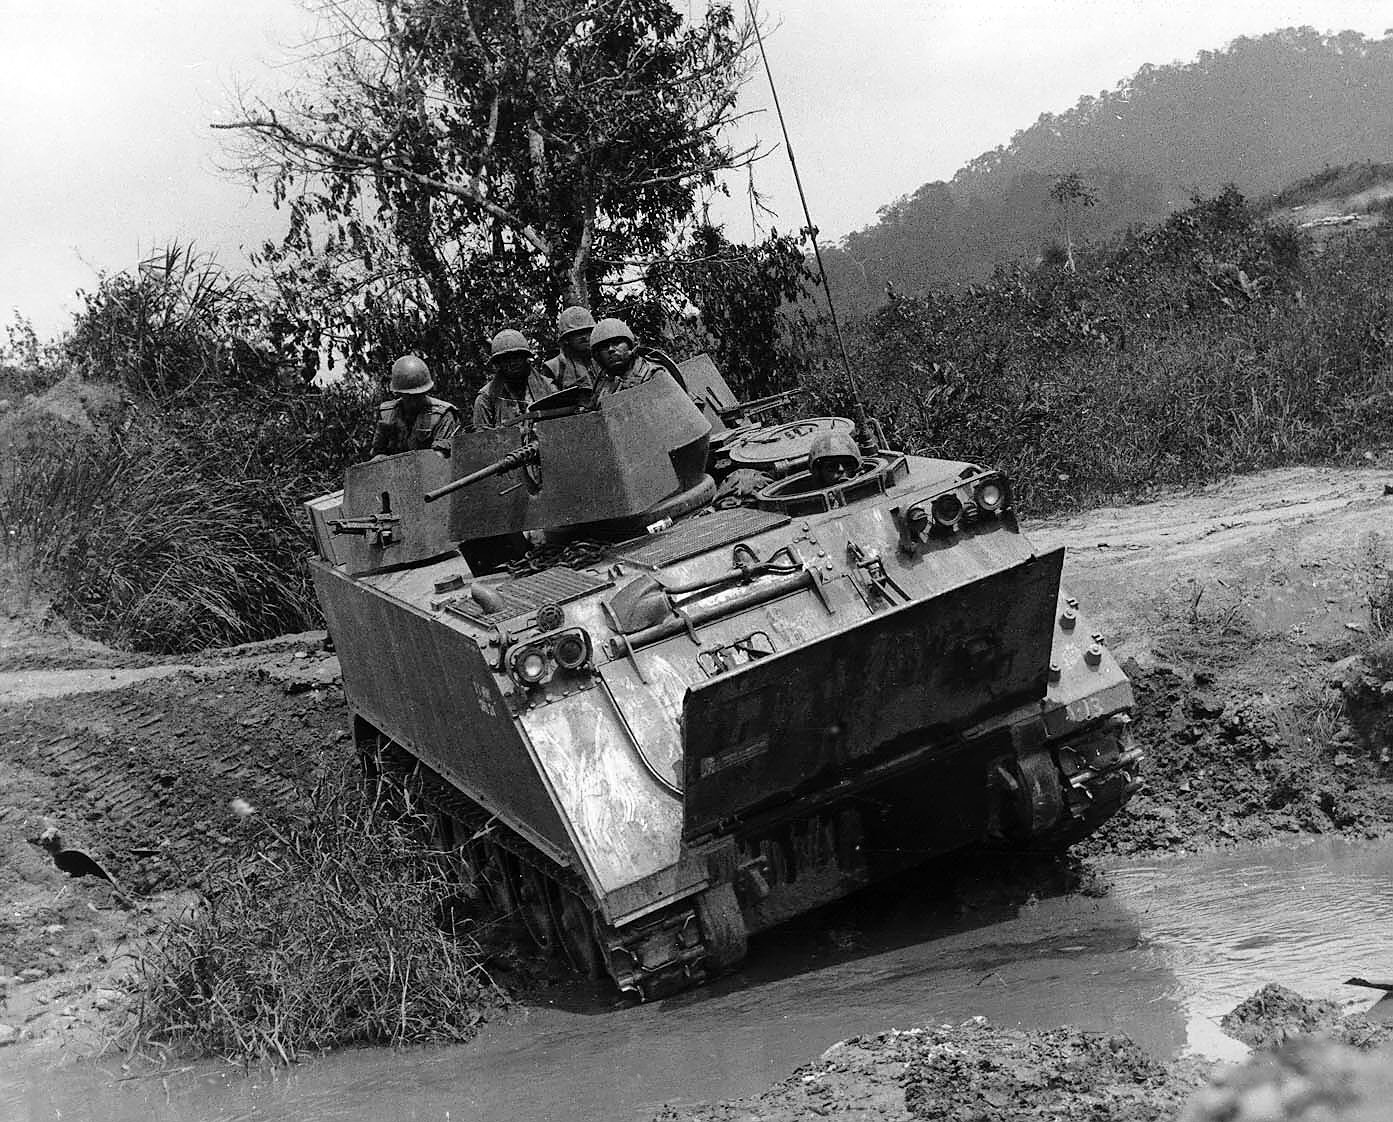 M113 armored personnel carrier | Military Wiki | FANDOM powered by Wikia